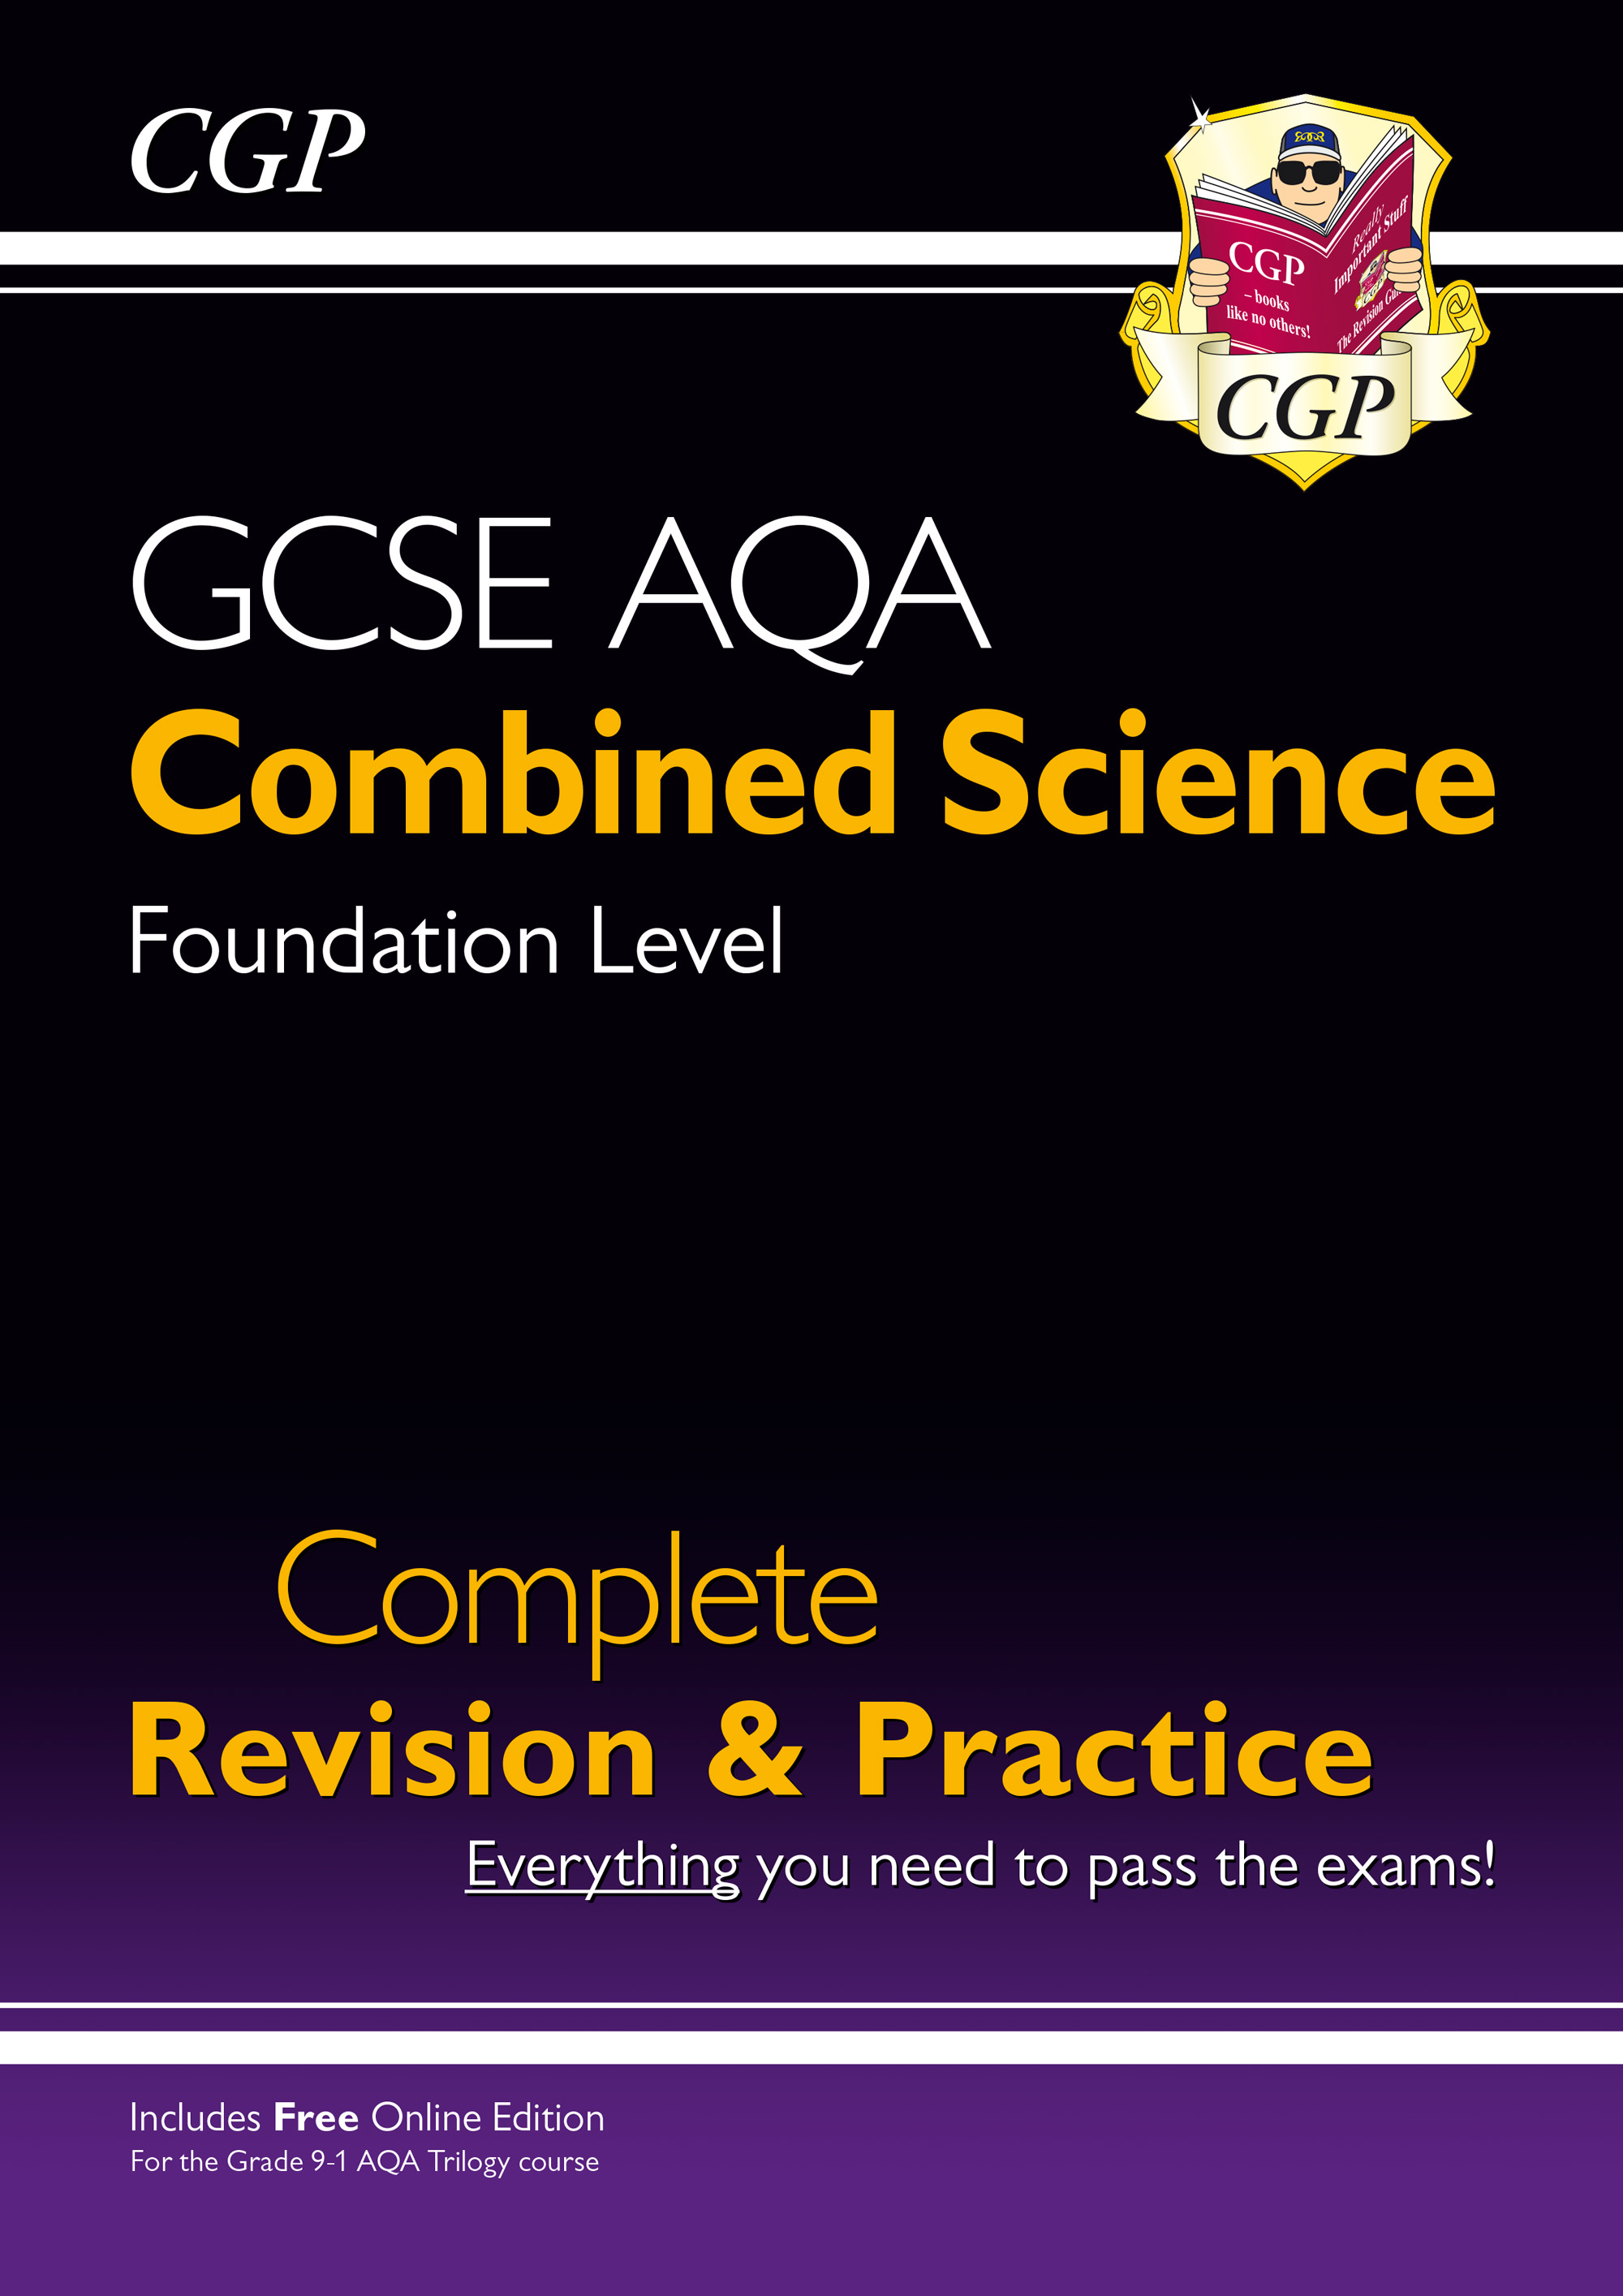 SCAFS41 - New 9-1 GCSE Combined Science: AQA Foundation Complete Revision & Practice (with Online Ed